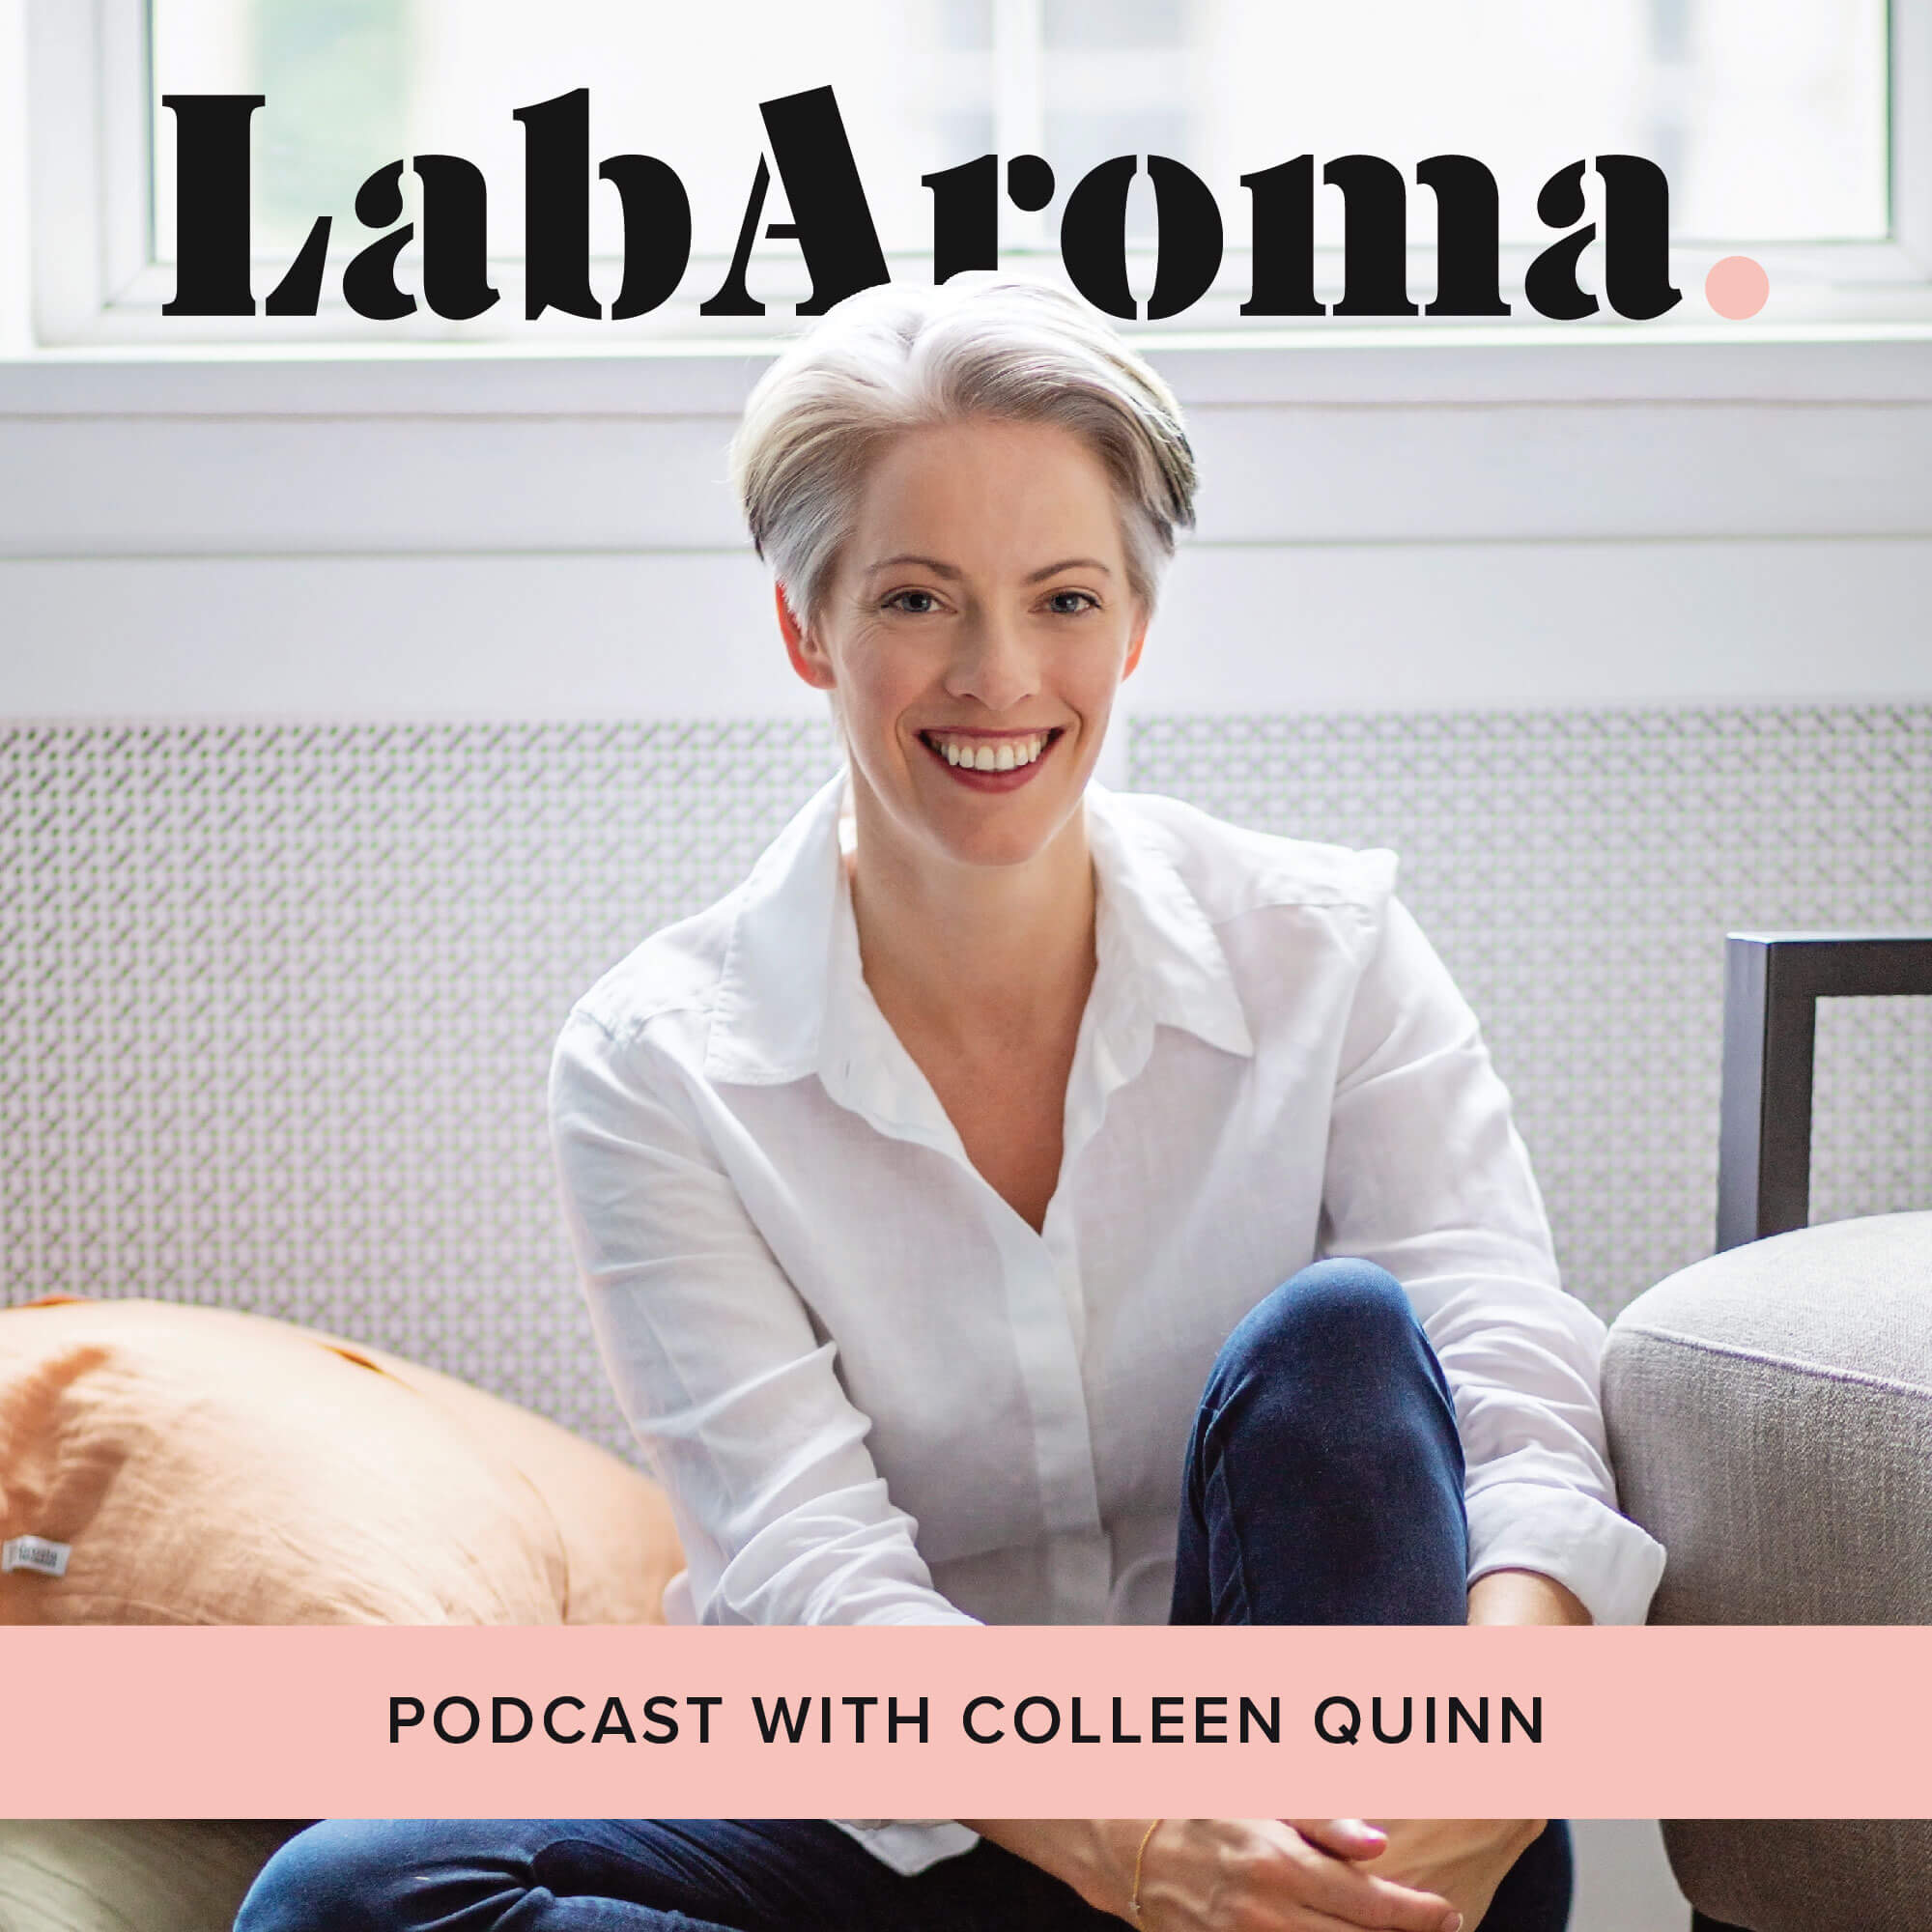 LabAroma Podcast cover